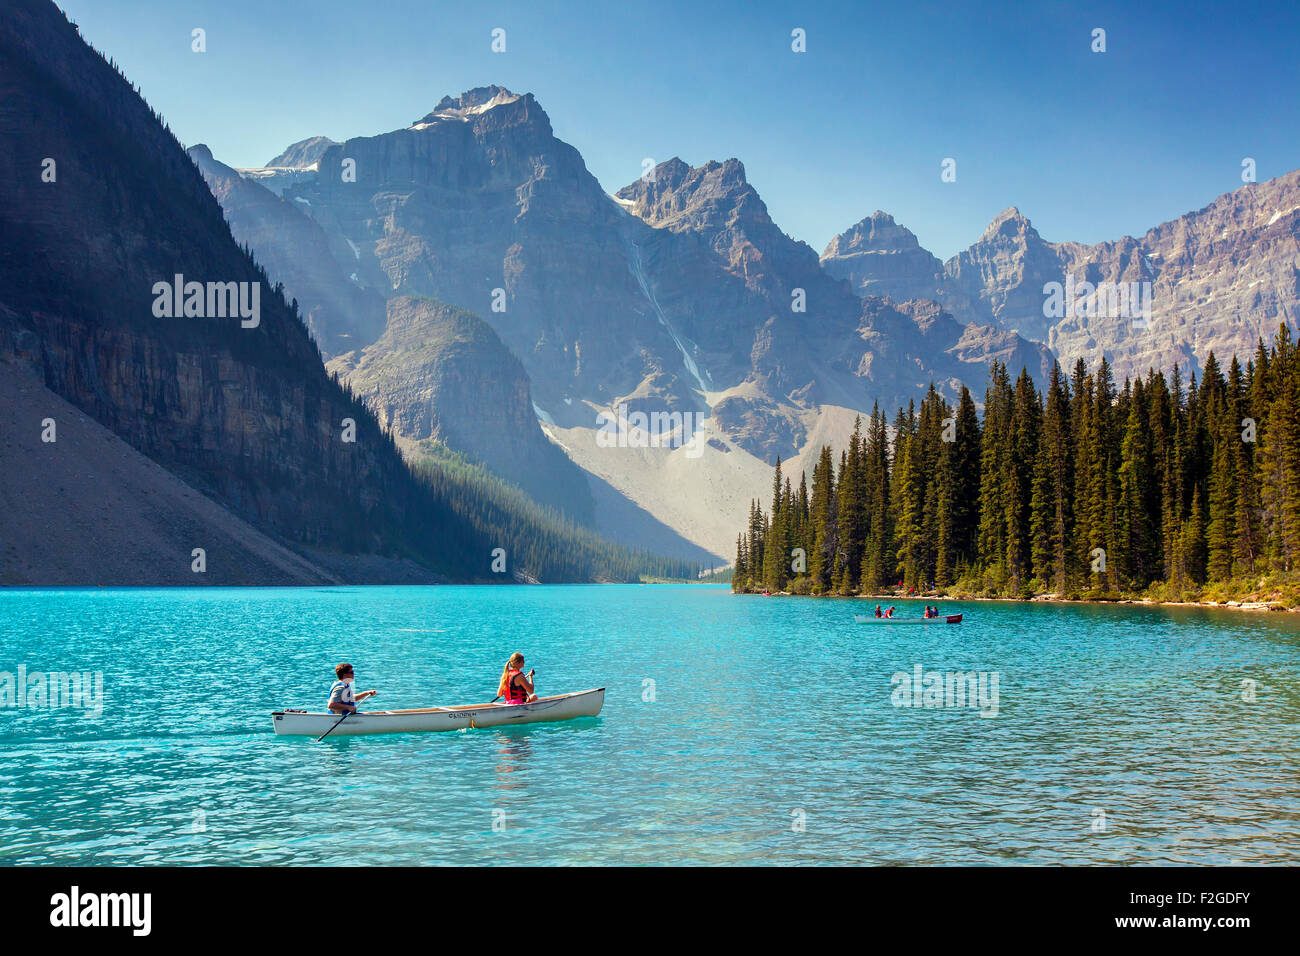 Tourists in canoe on Moraine Lake in the Valley of the Ten Peaks, Banff National Park, Alberta, Canada - Stock Image